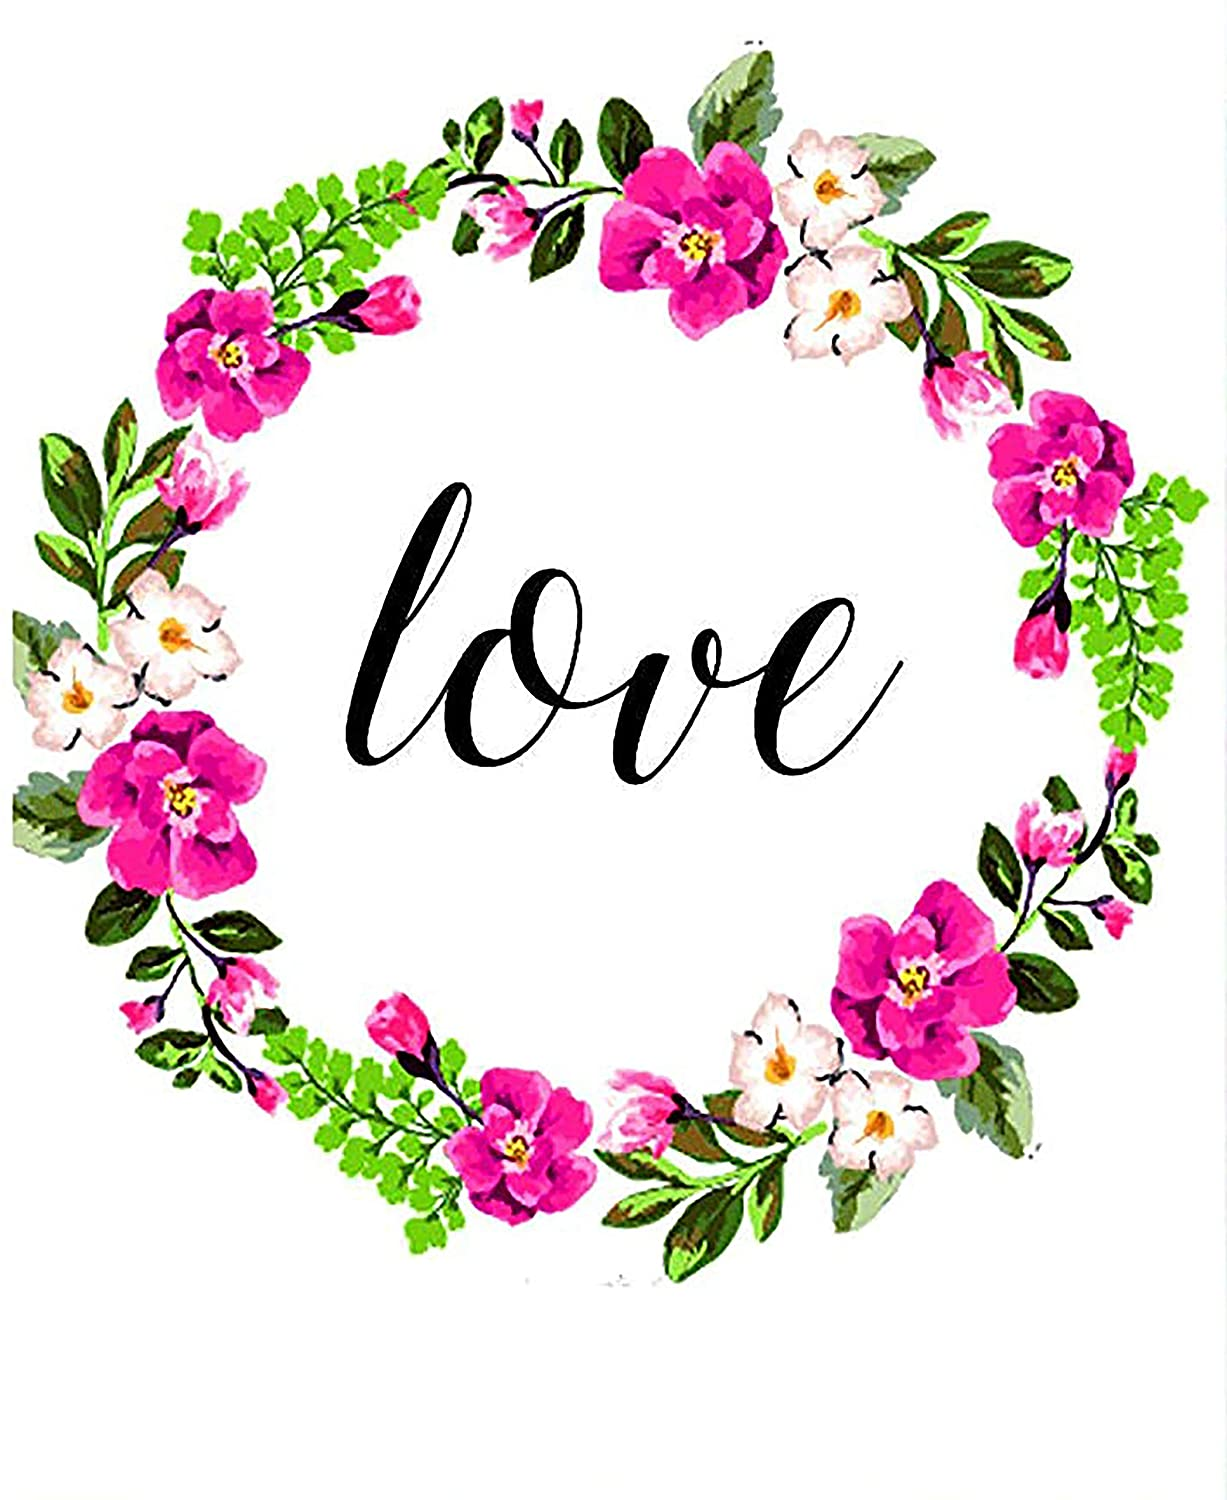 Love Prints-Happy lovely Quote- Love Wall Art- Love Decor-Floral Love Print- Love Wall Decor-Faith Hope-Love Art-Wall art decor with quote -LOVE-Home Decor- wall art Floral Print-#WP-06